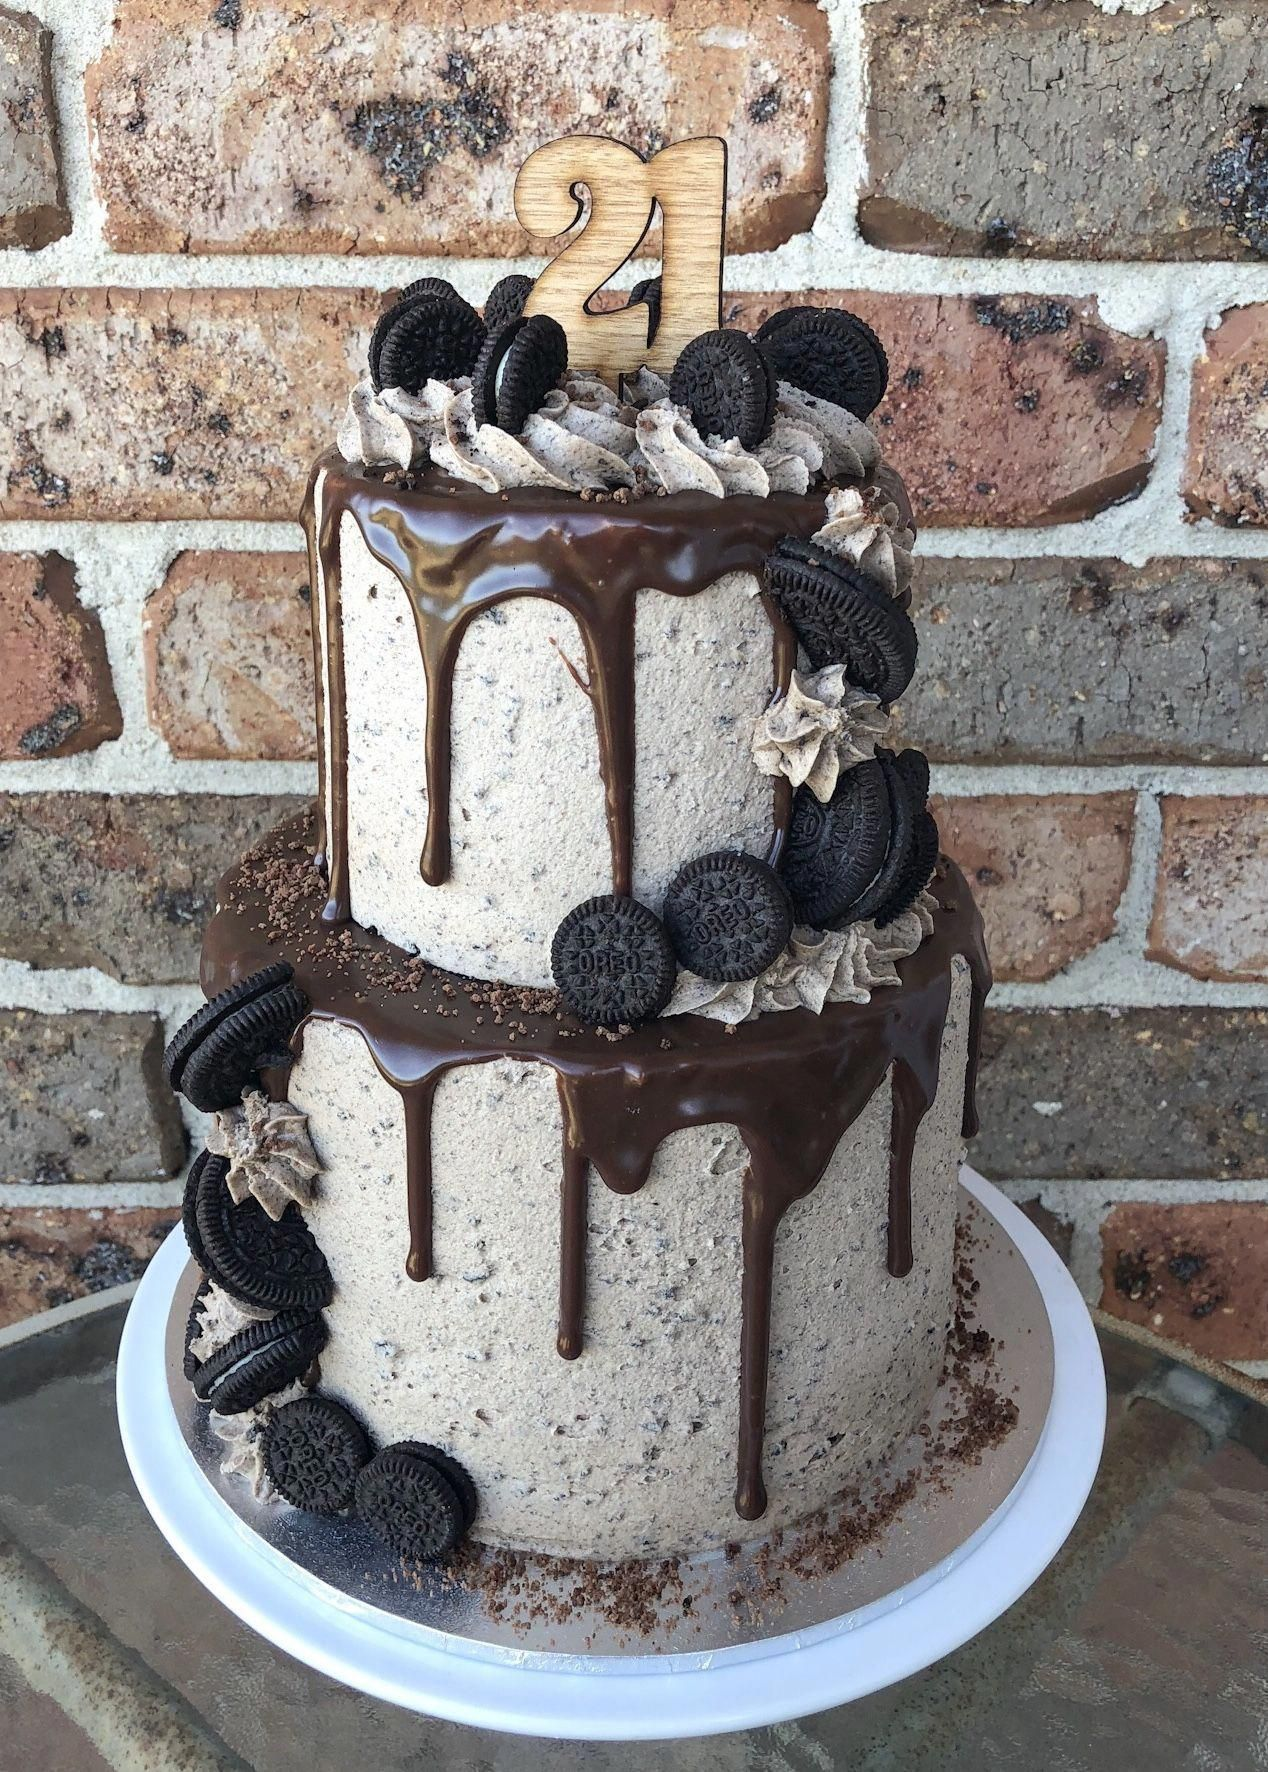 How To Make A Drip Cake To Wow The Party   Oreo cake ...